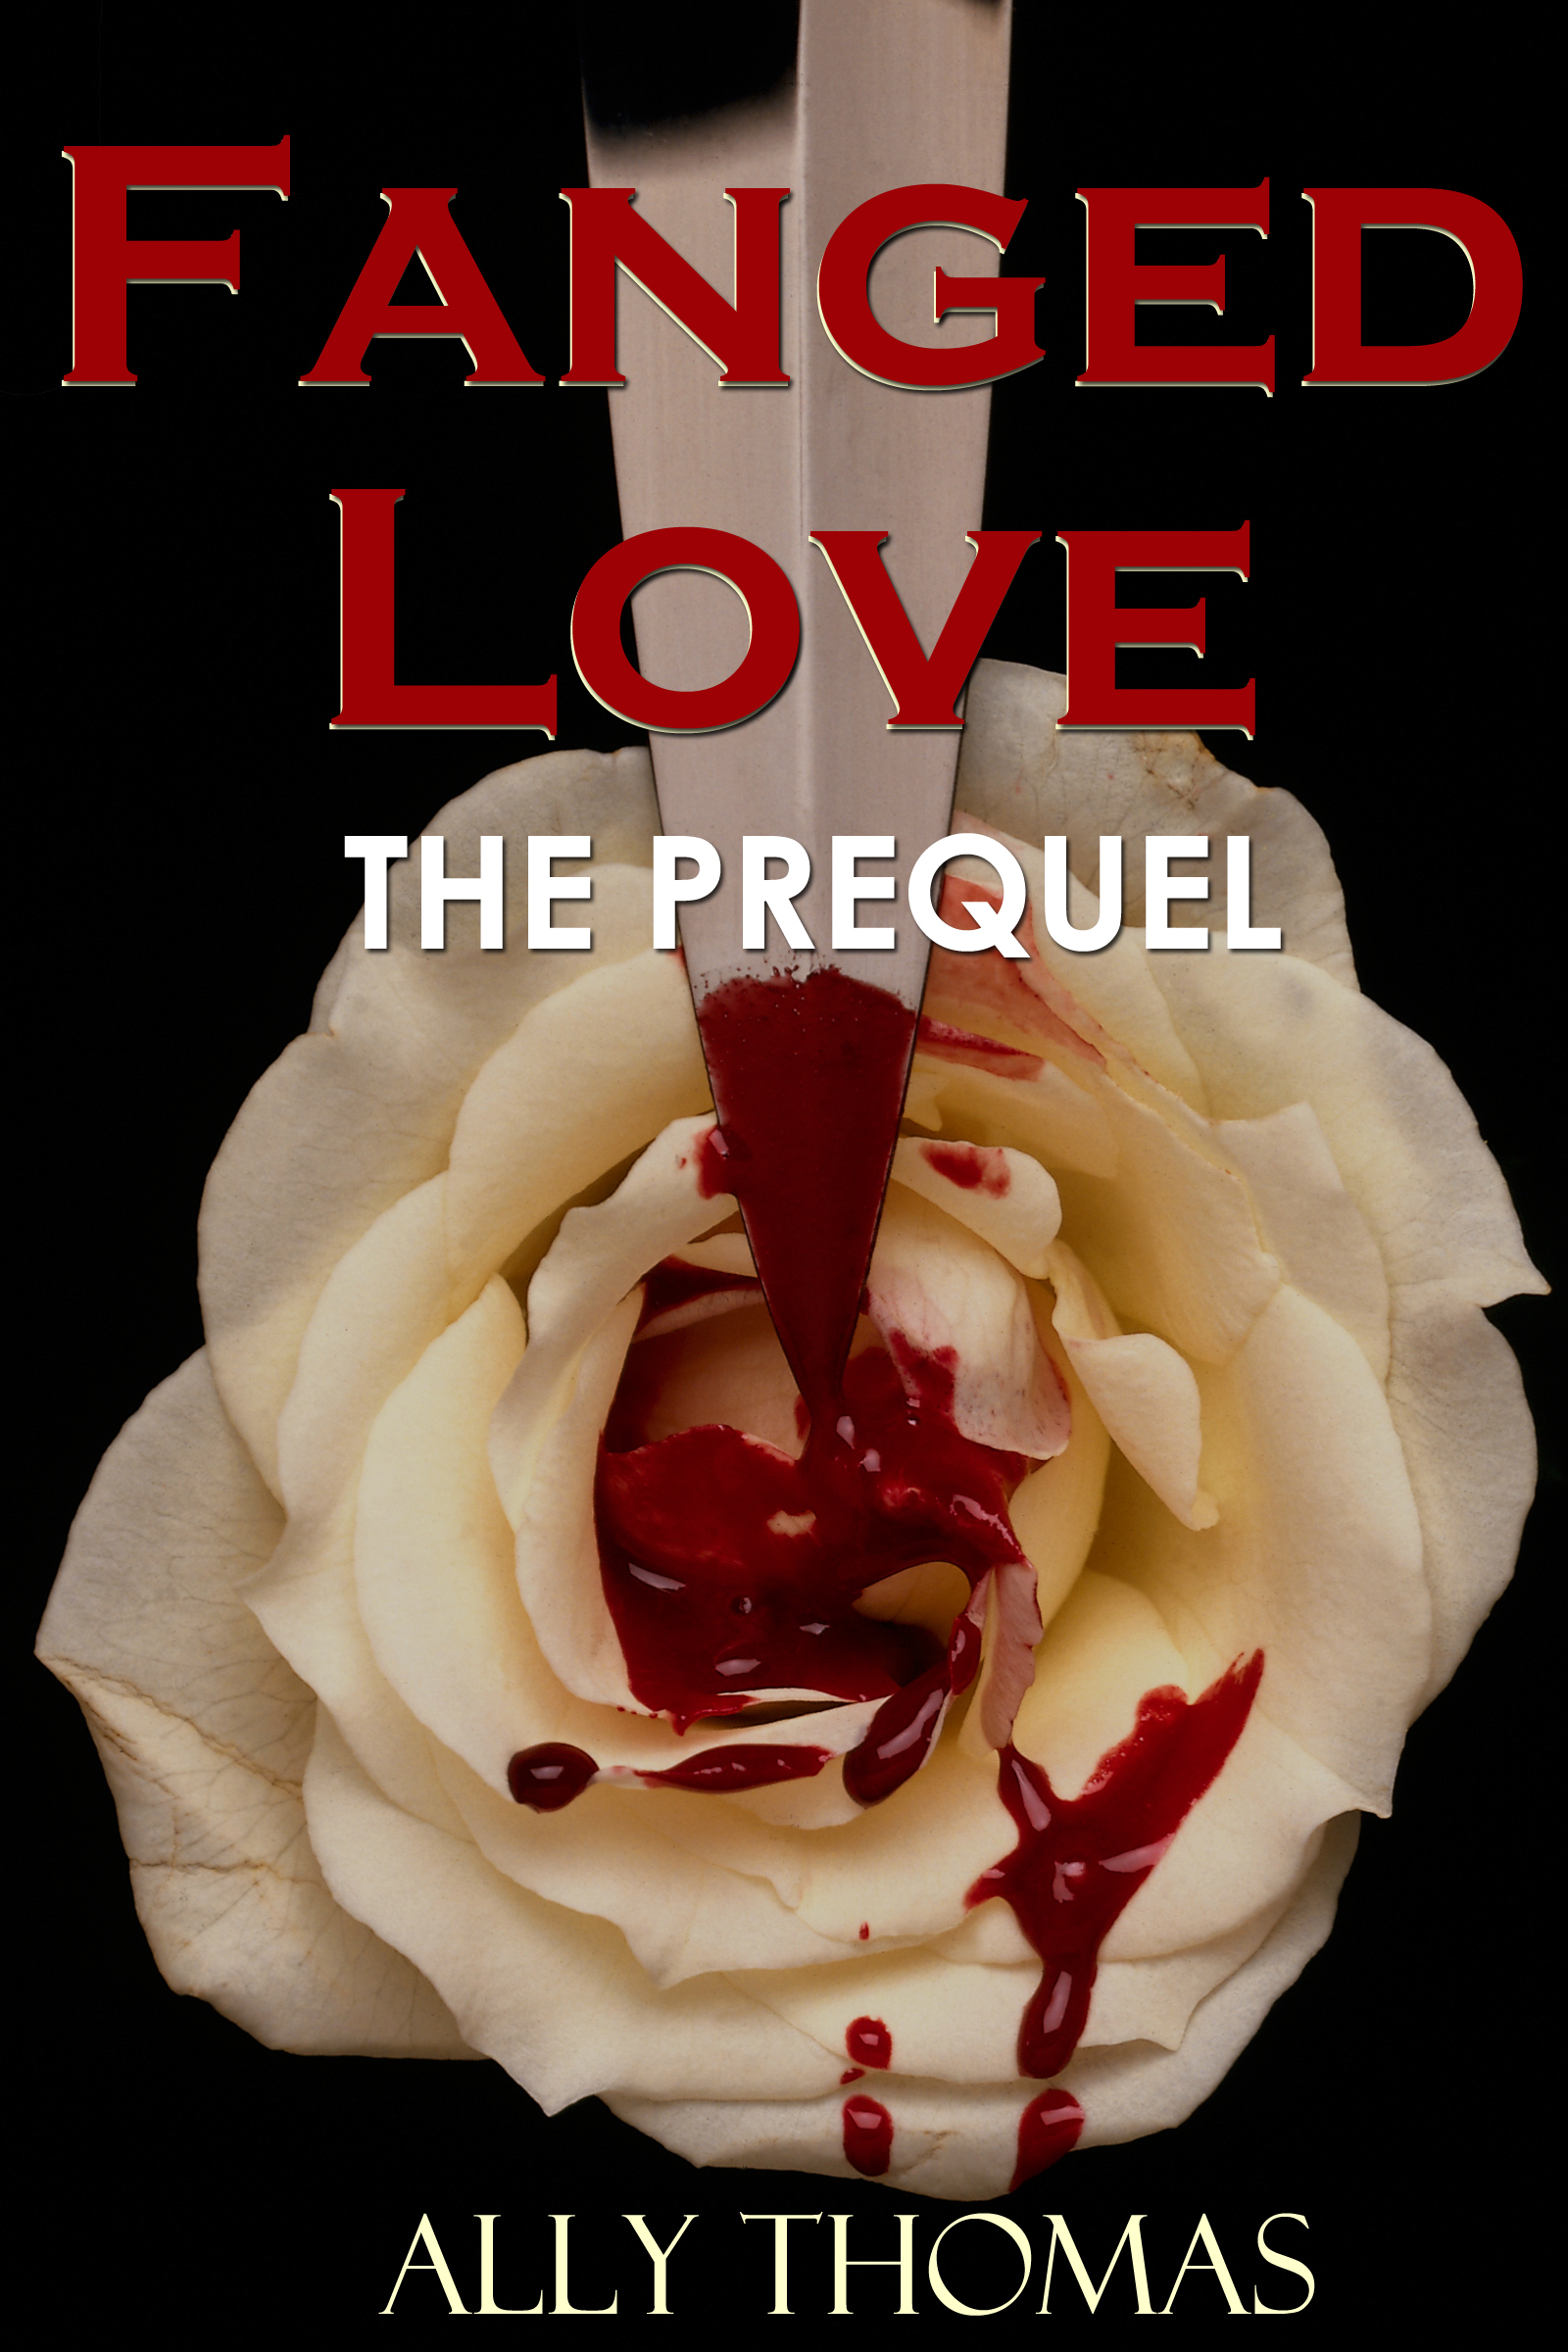 Fanged Love: The Prequel